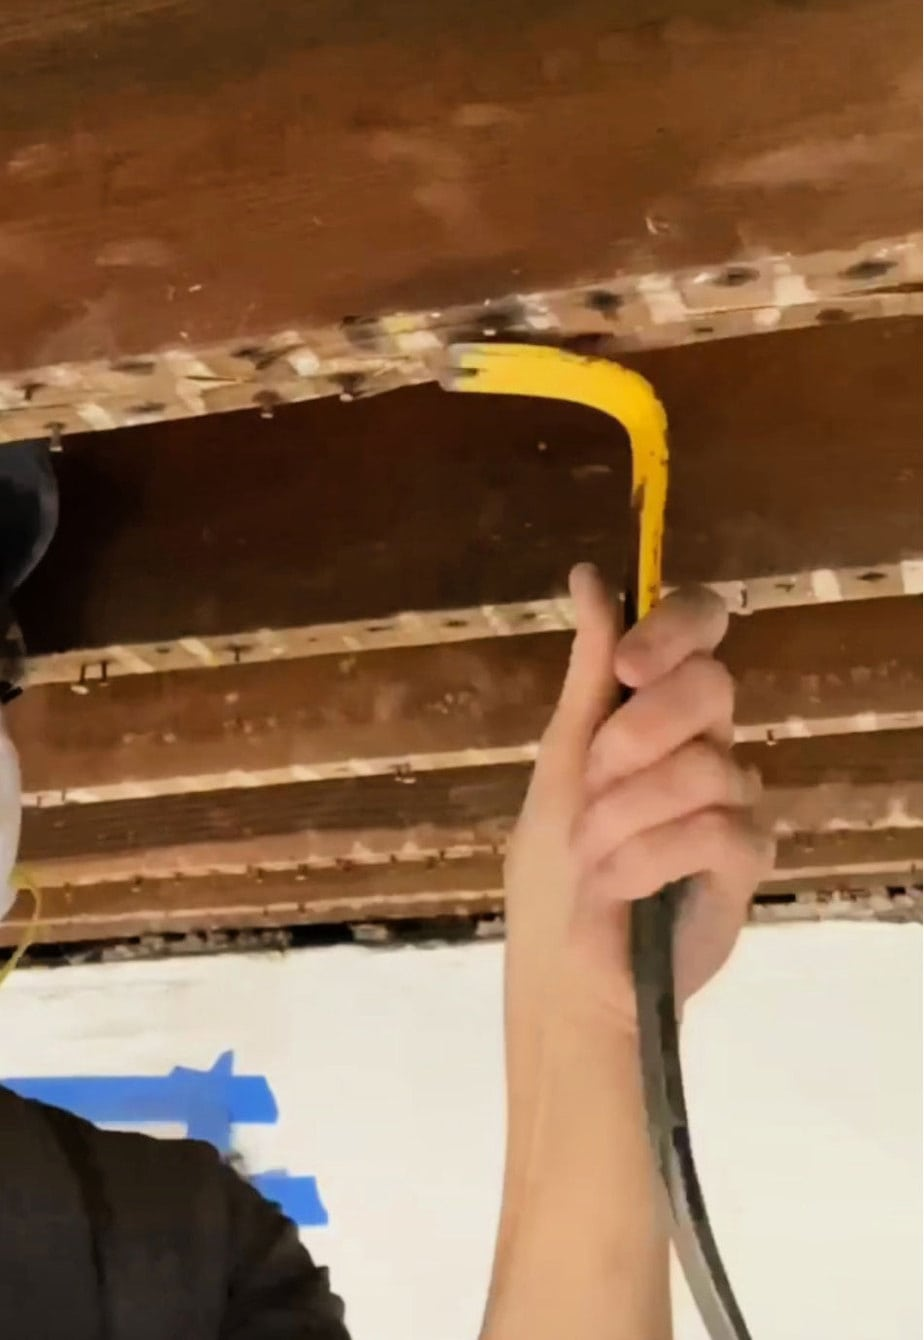 removing nails from exposed beams